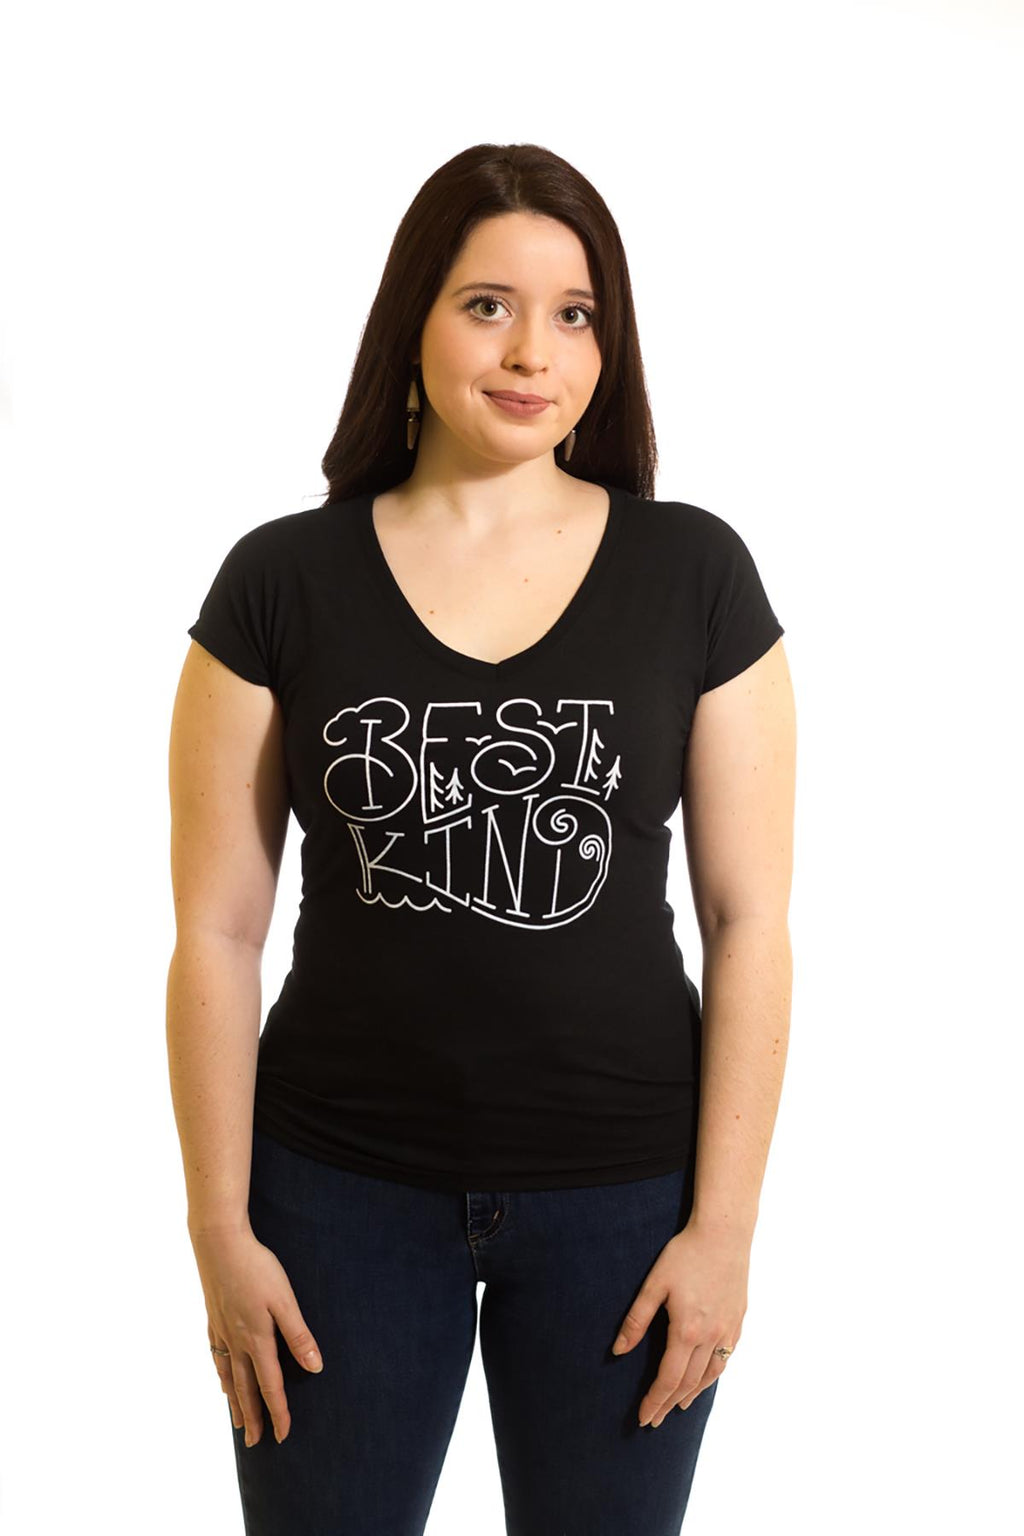 Women's Black Best Kind T-Shirt| Newfoundland | Johnny Ruth